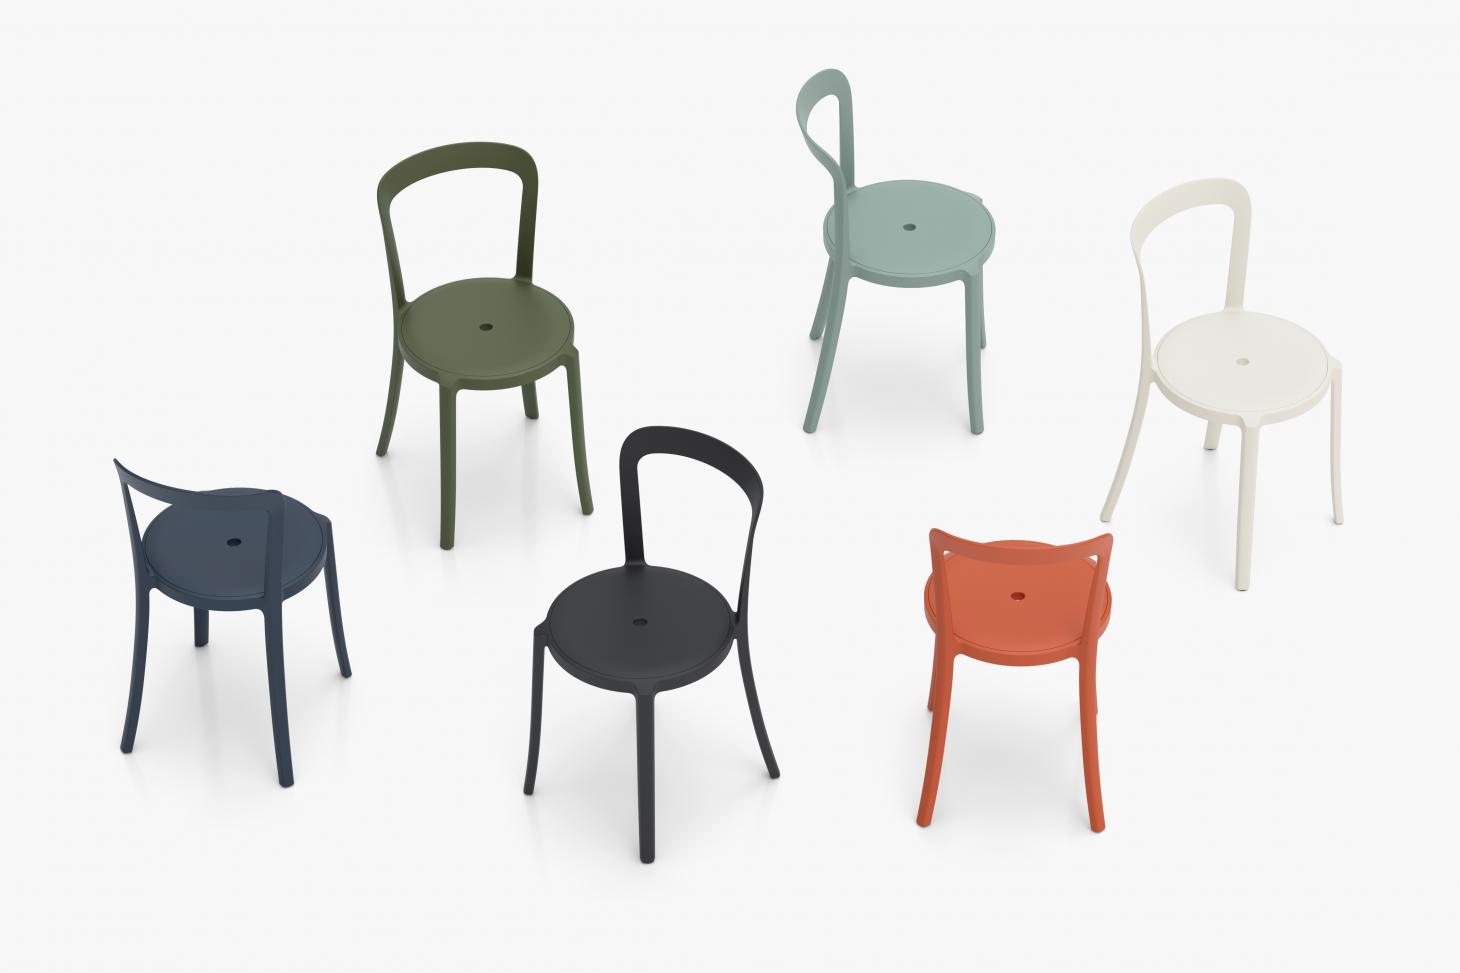 Plastic chairs in green, blue and orange